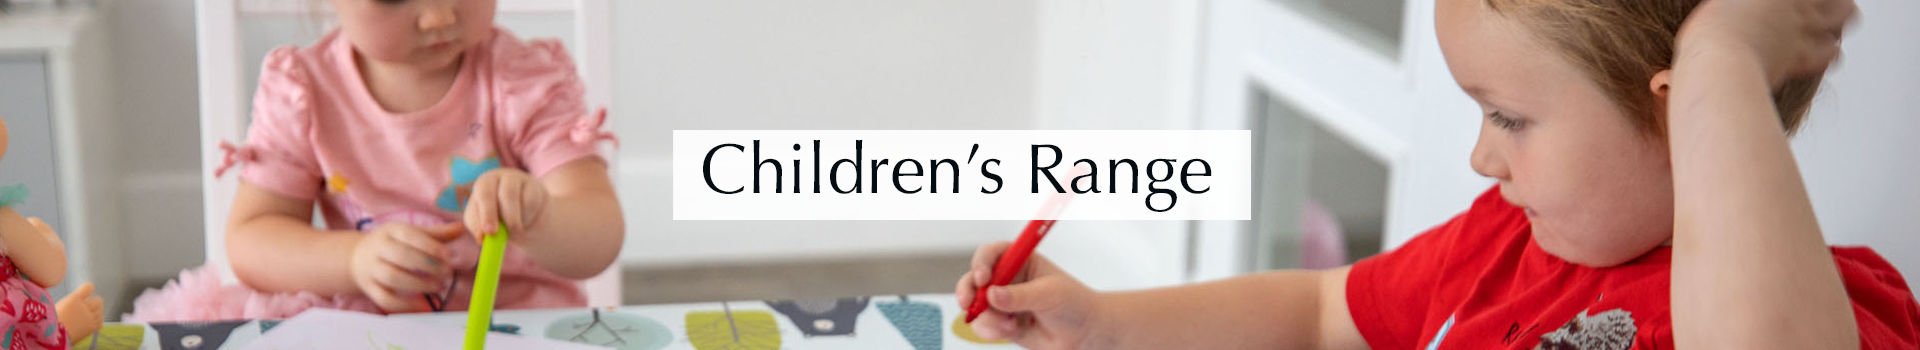 children-s-range-category-banner-celina-digby.png